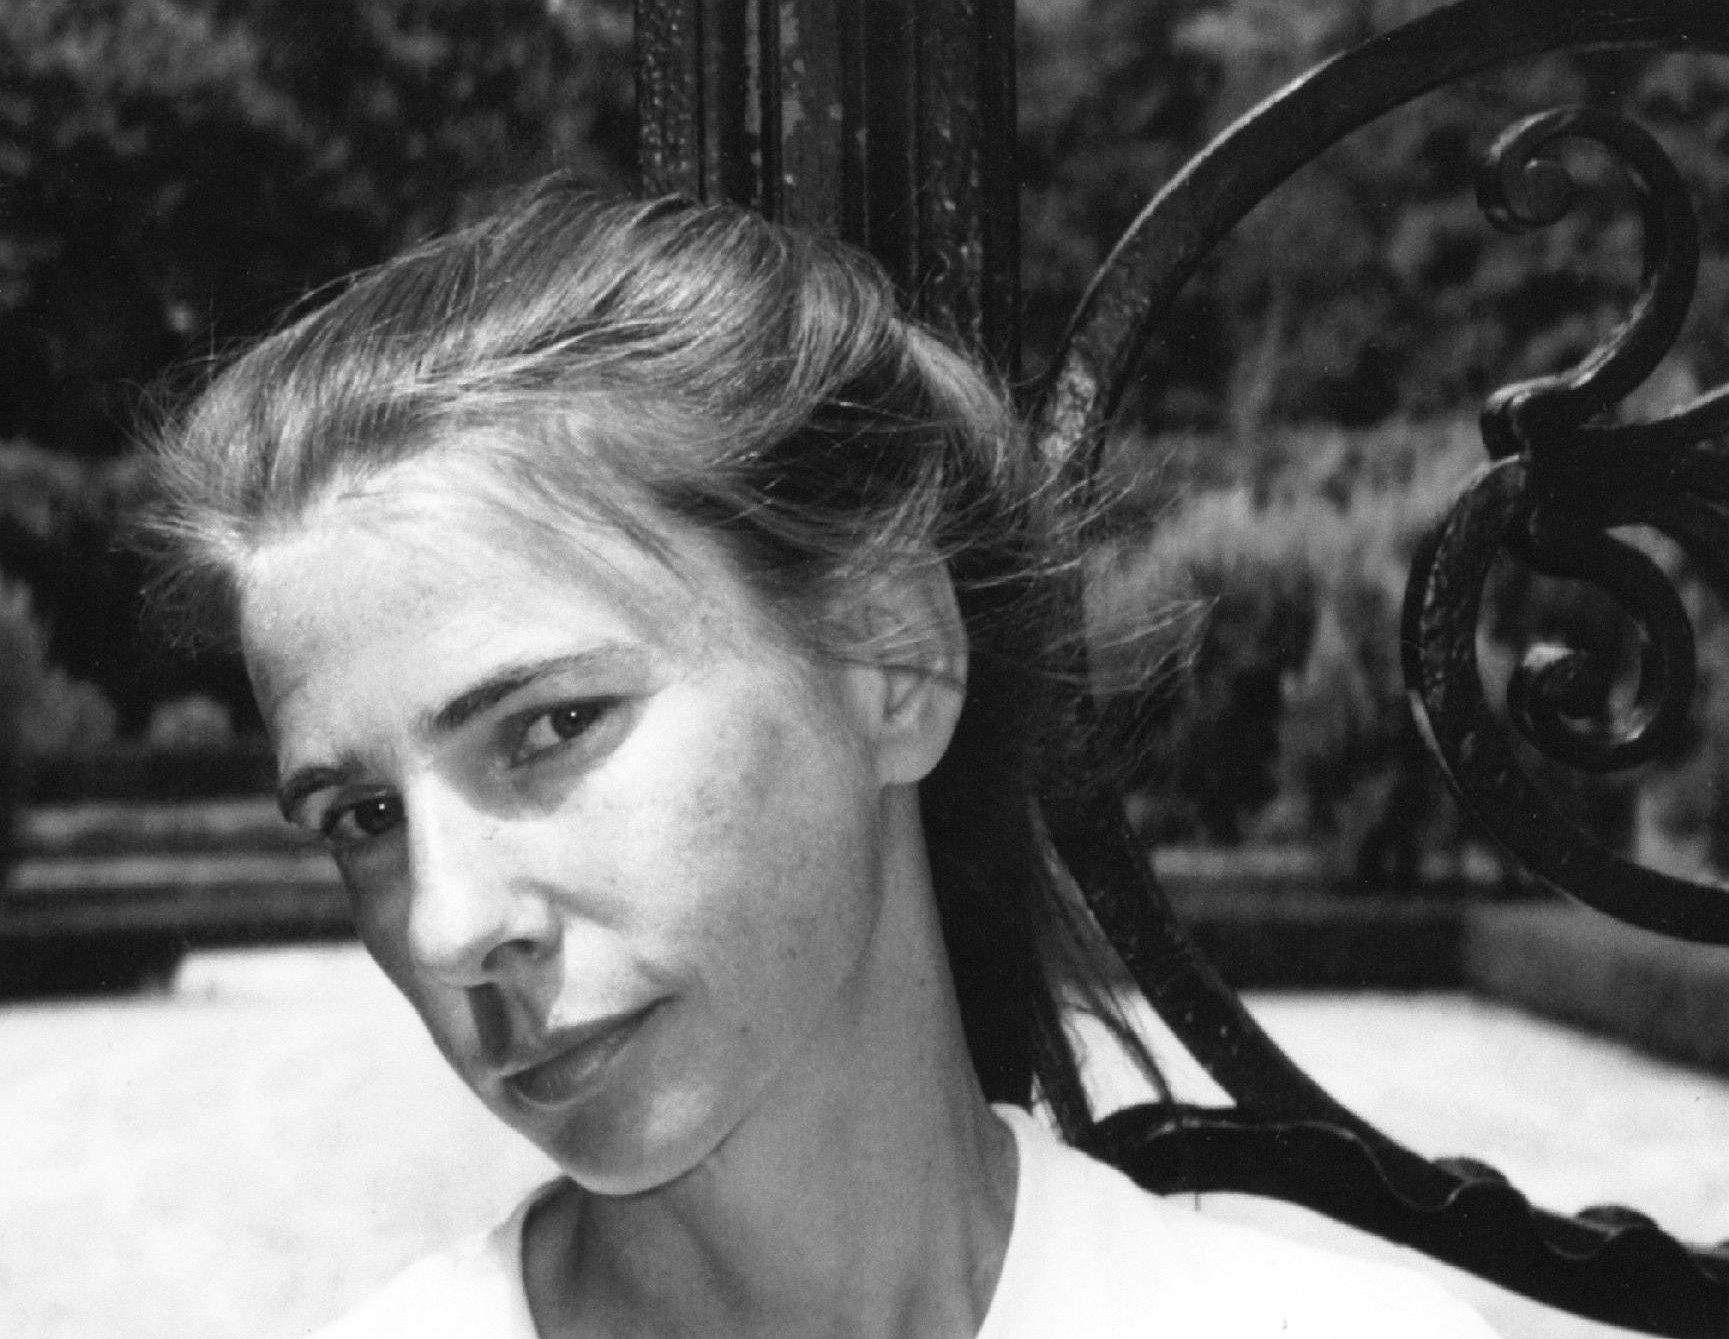 Lionel Shriver - Why I Write